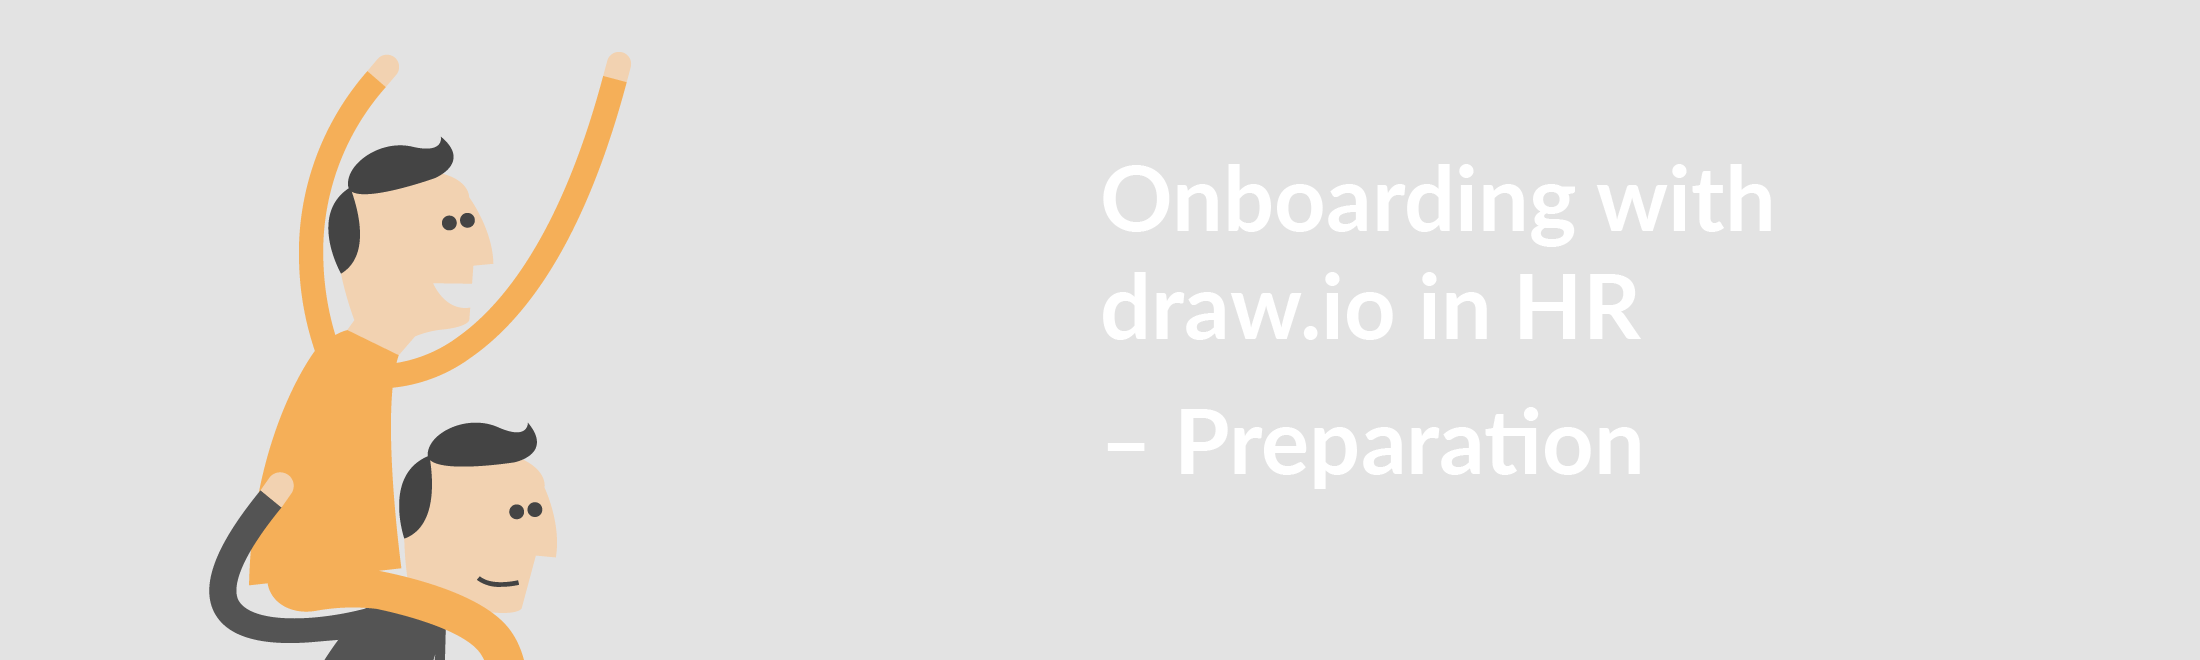 Better onboarding with draw.io in HR.